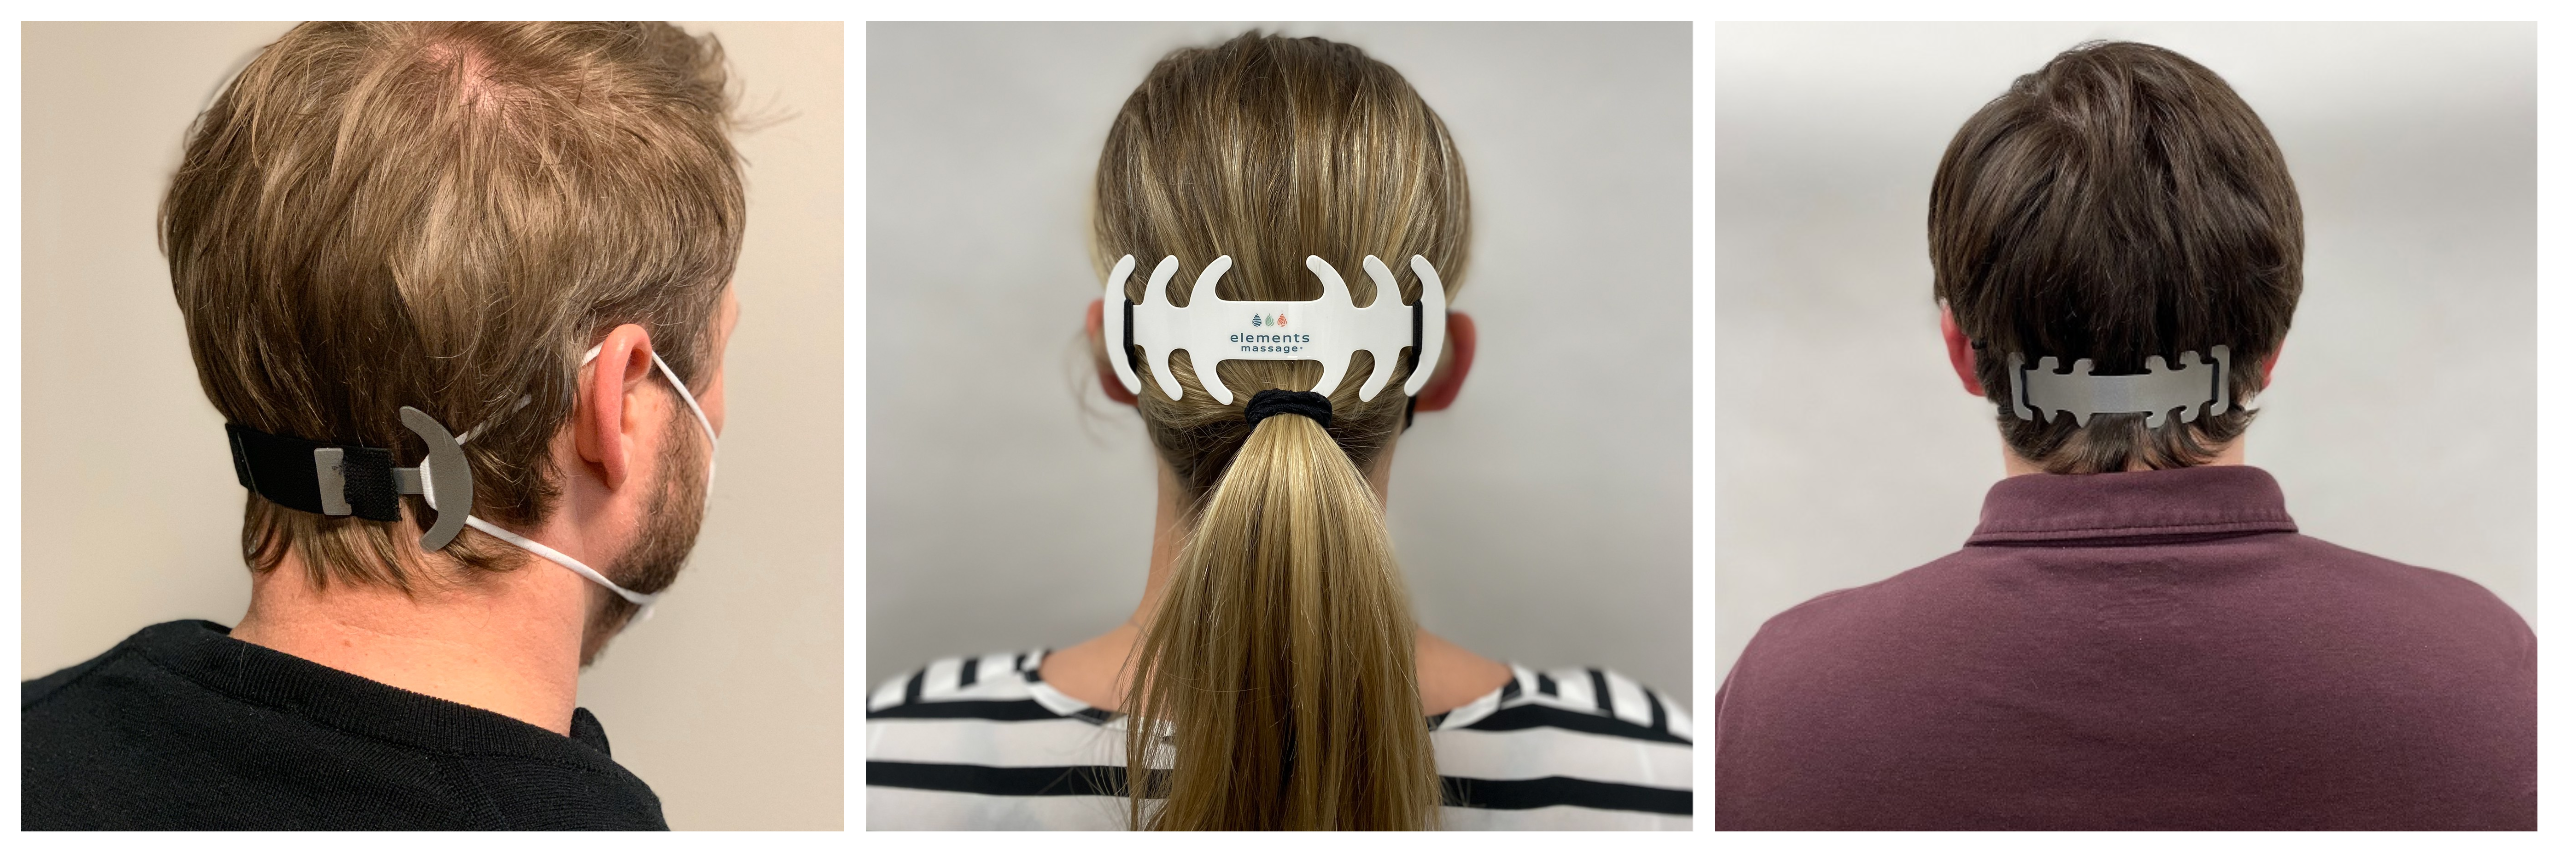 Ear guards - Comfort Band, Ear Saver, & Ear Relief